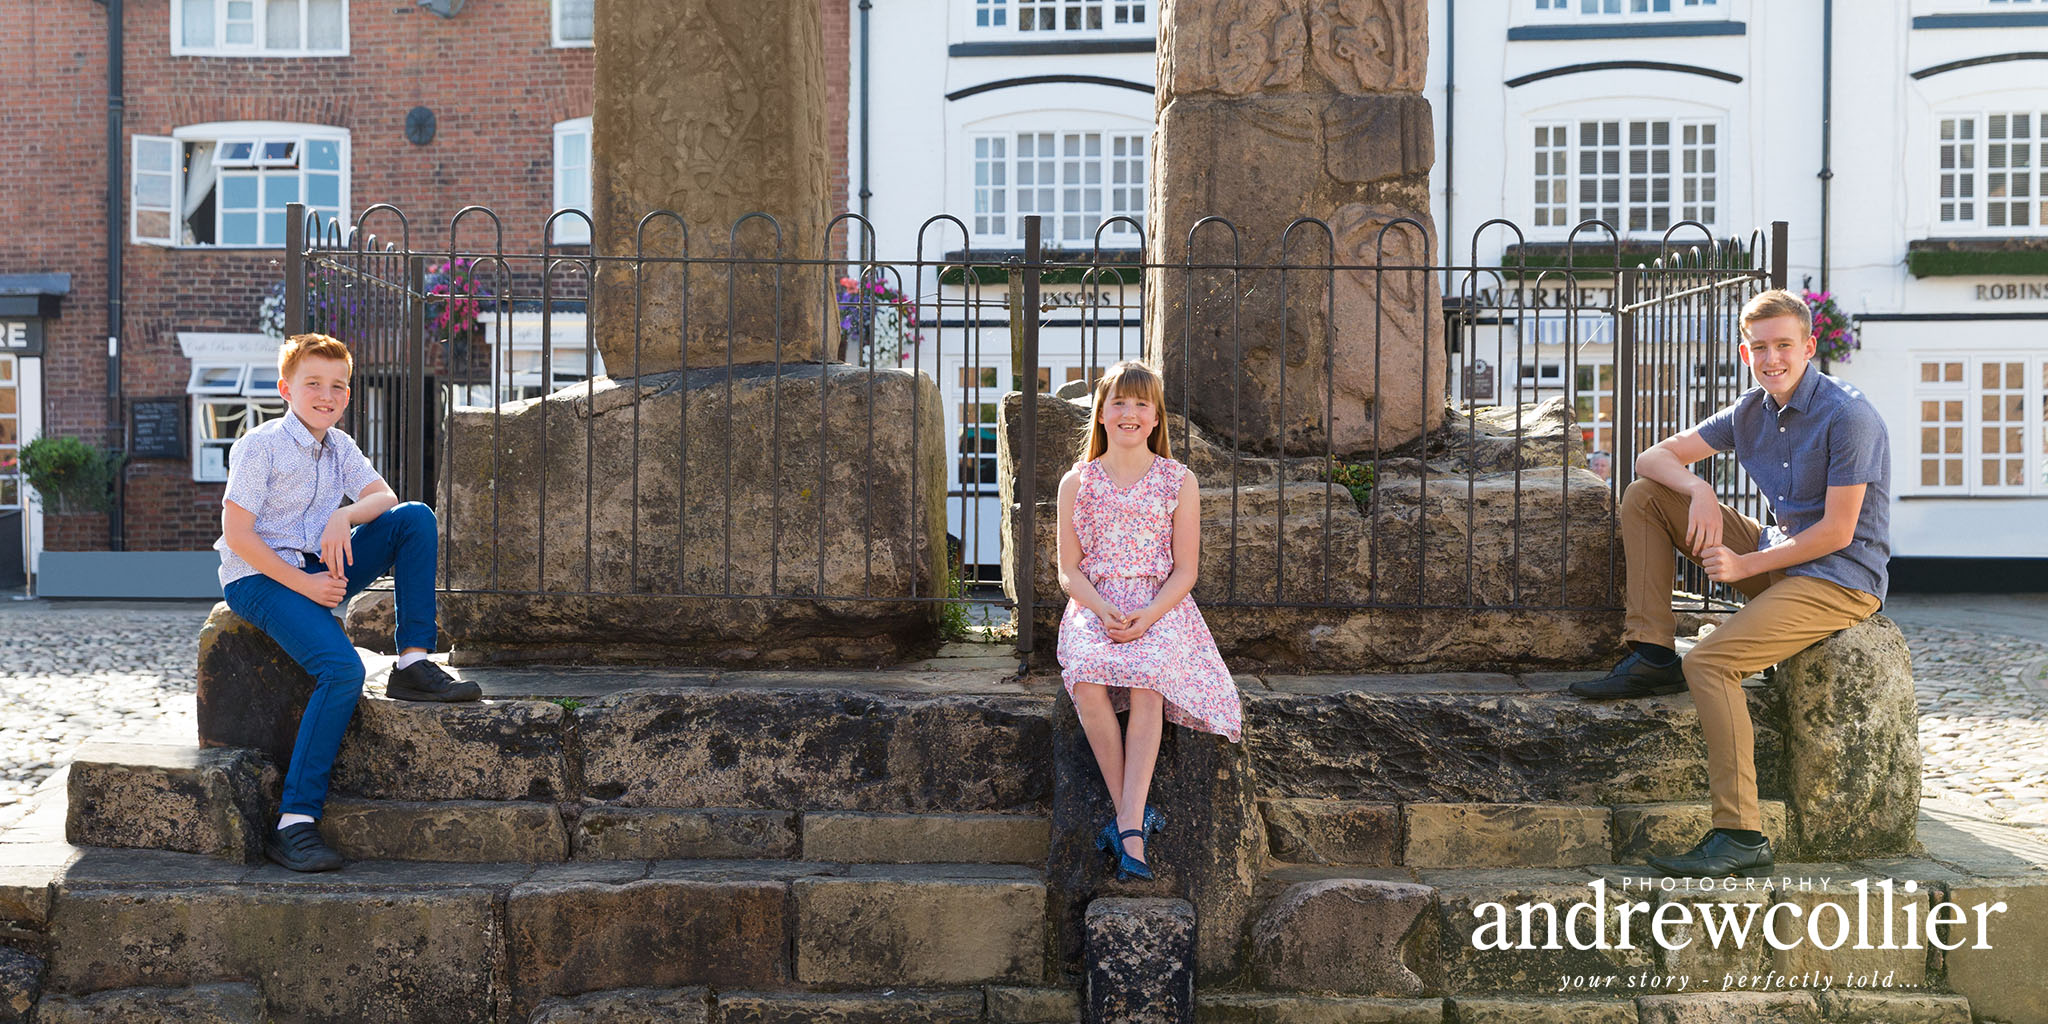 Socially distanced family group portraits in Sandbach, Cheshire